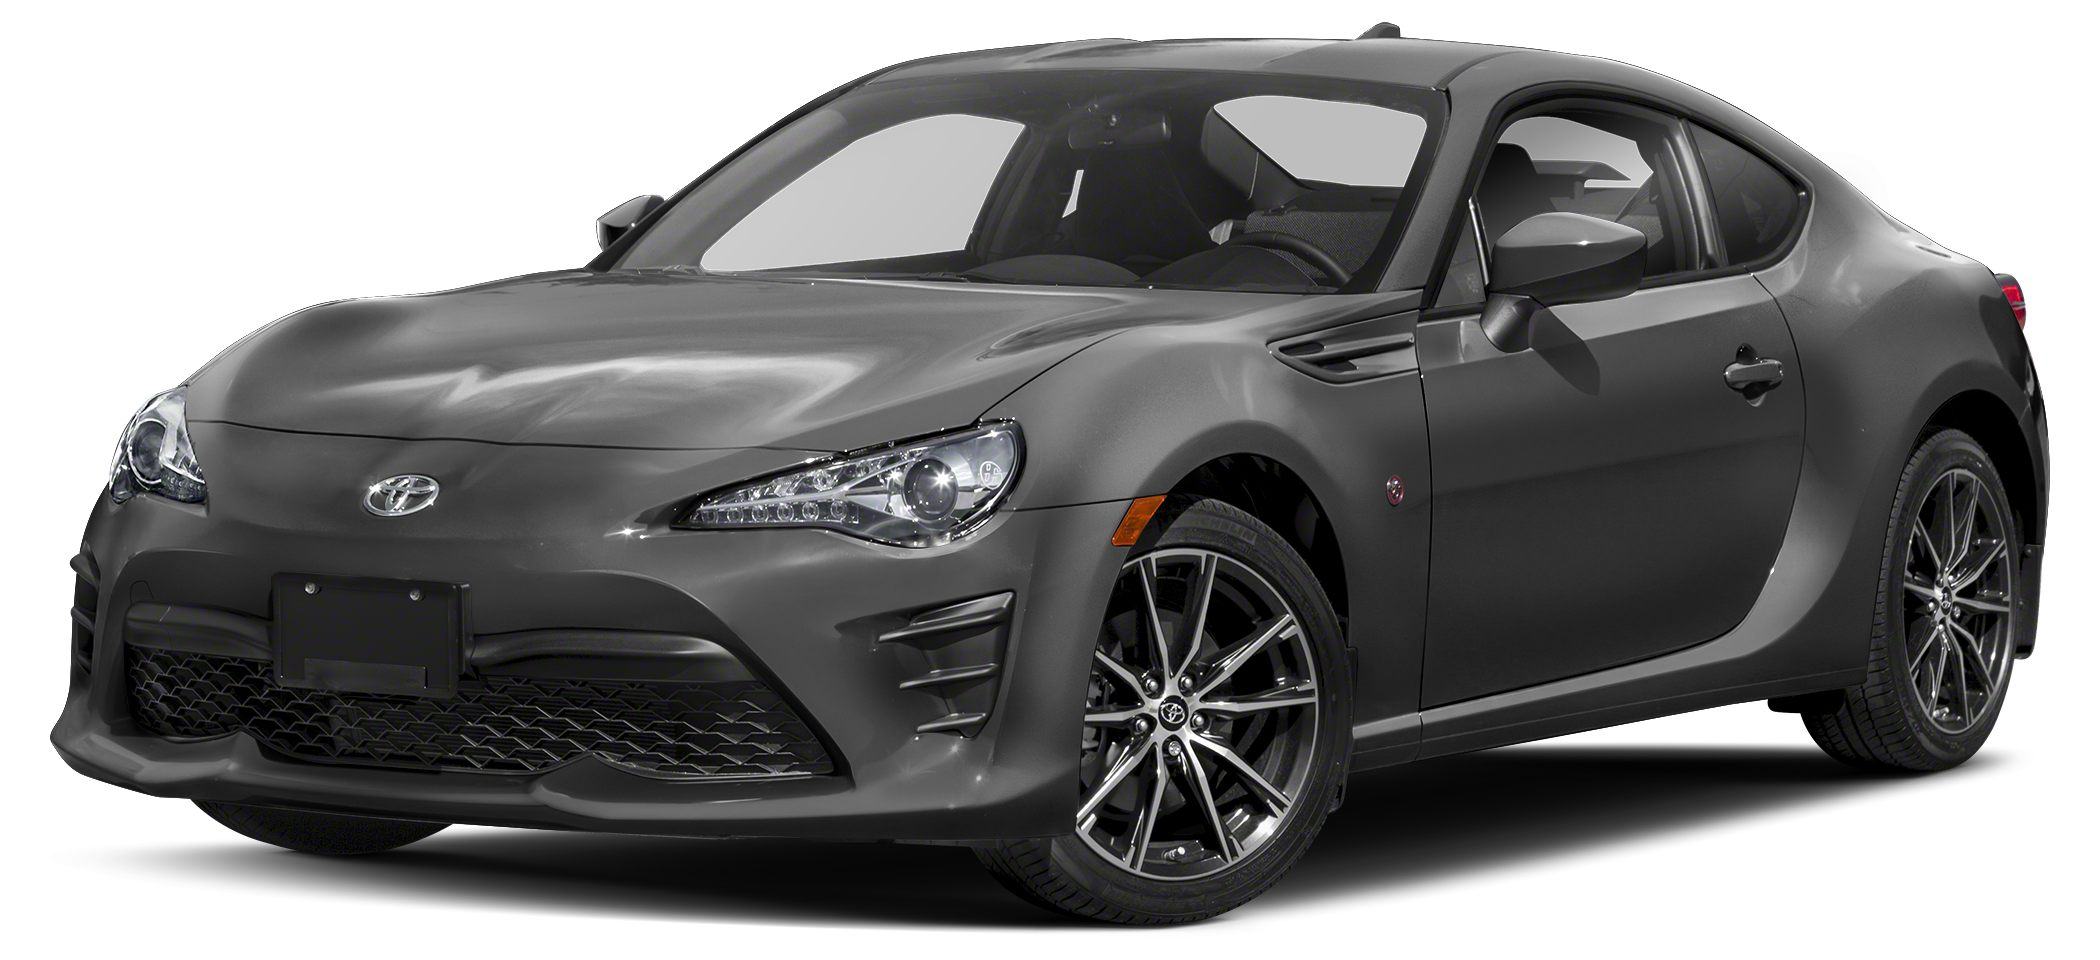 2018 Toyota 86 Base This 2018 Toyota 86 2dr Base features a 20L 4 Cylinder 4cyl Gasoline engine